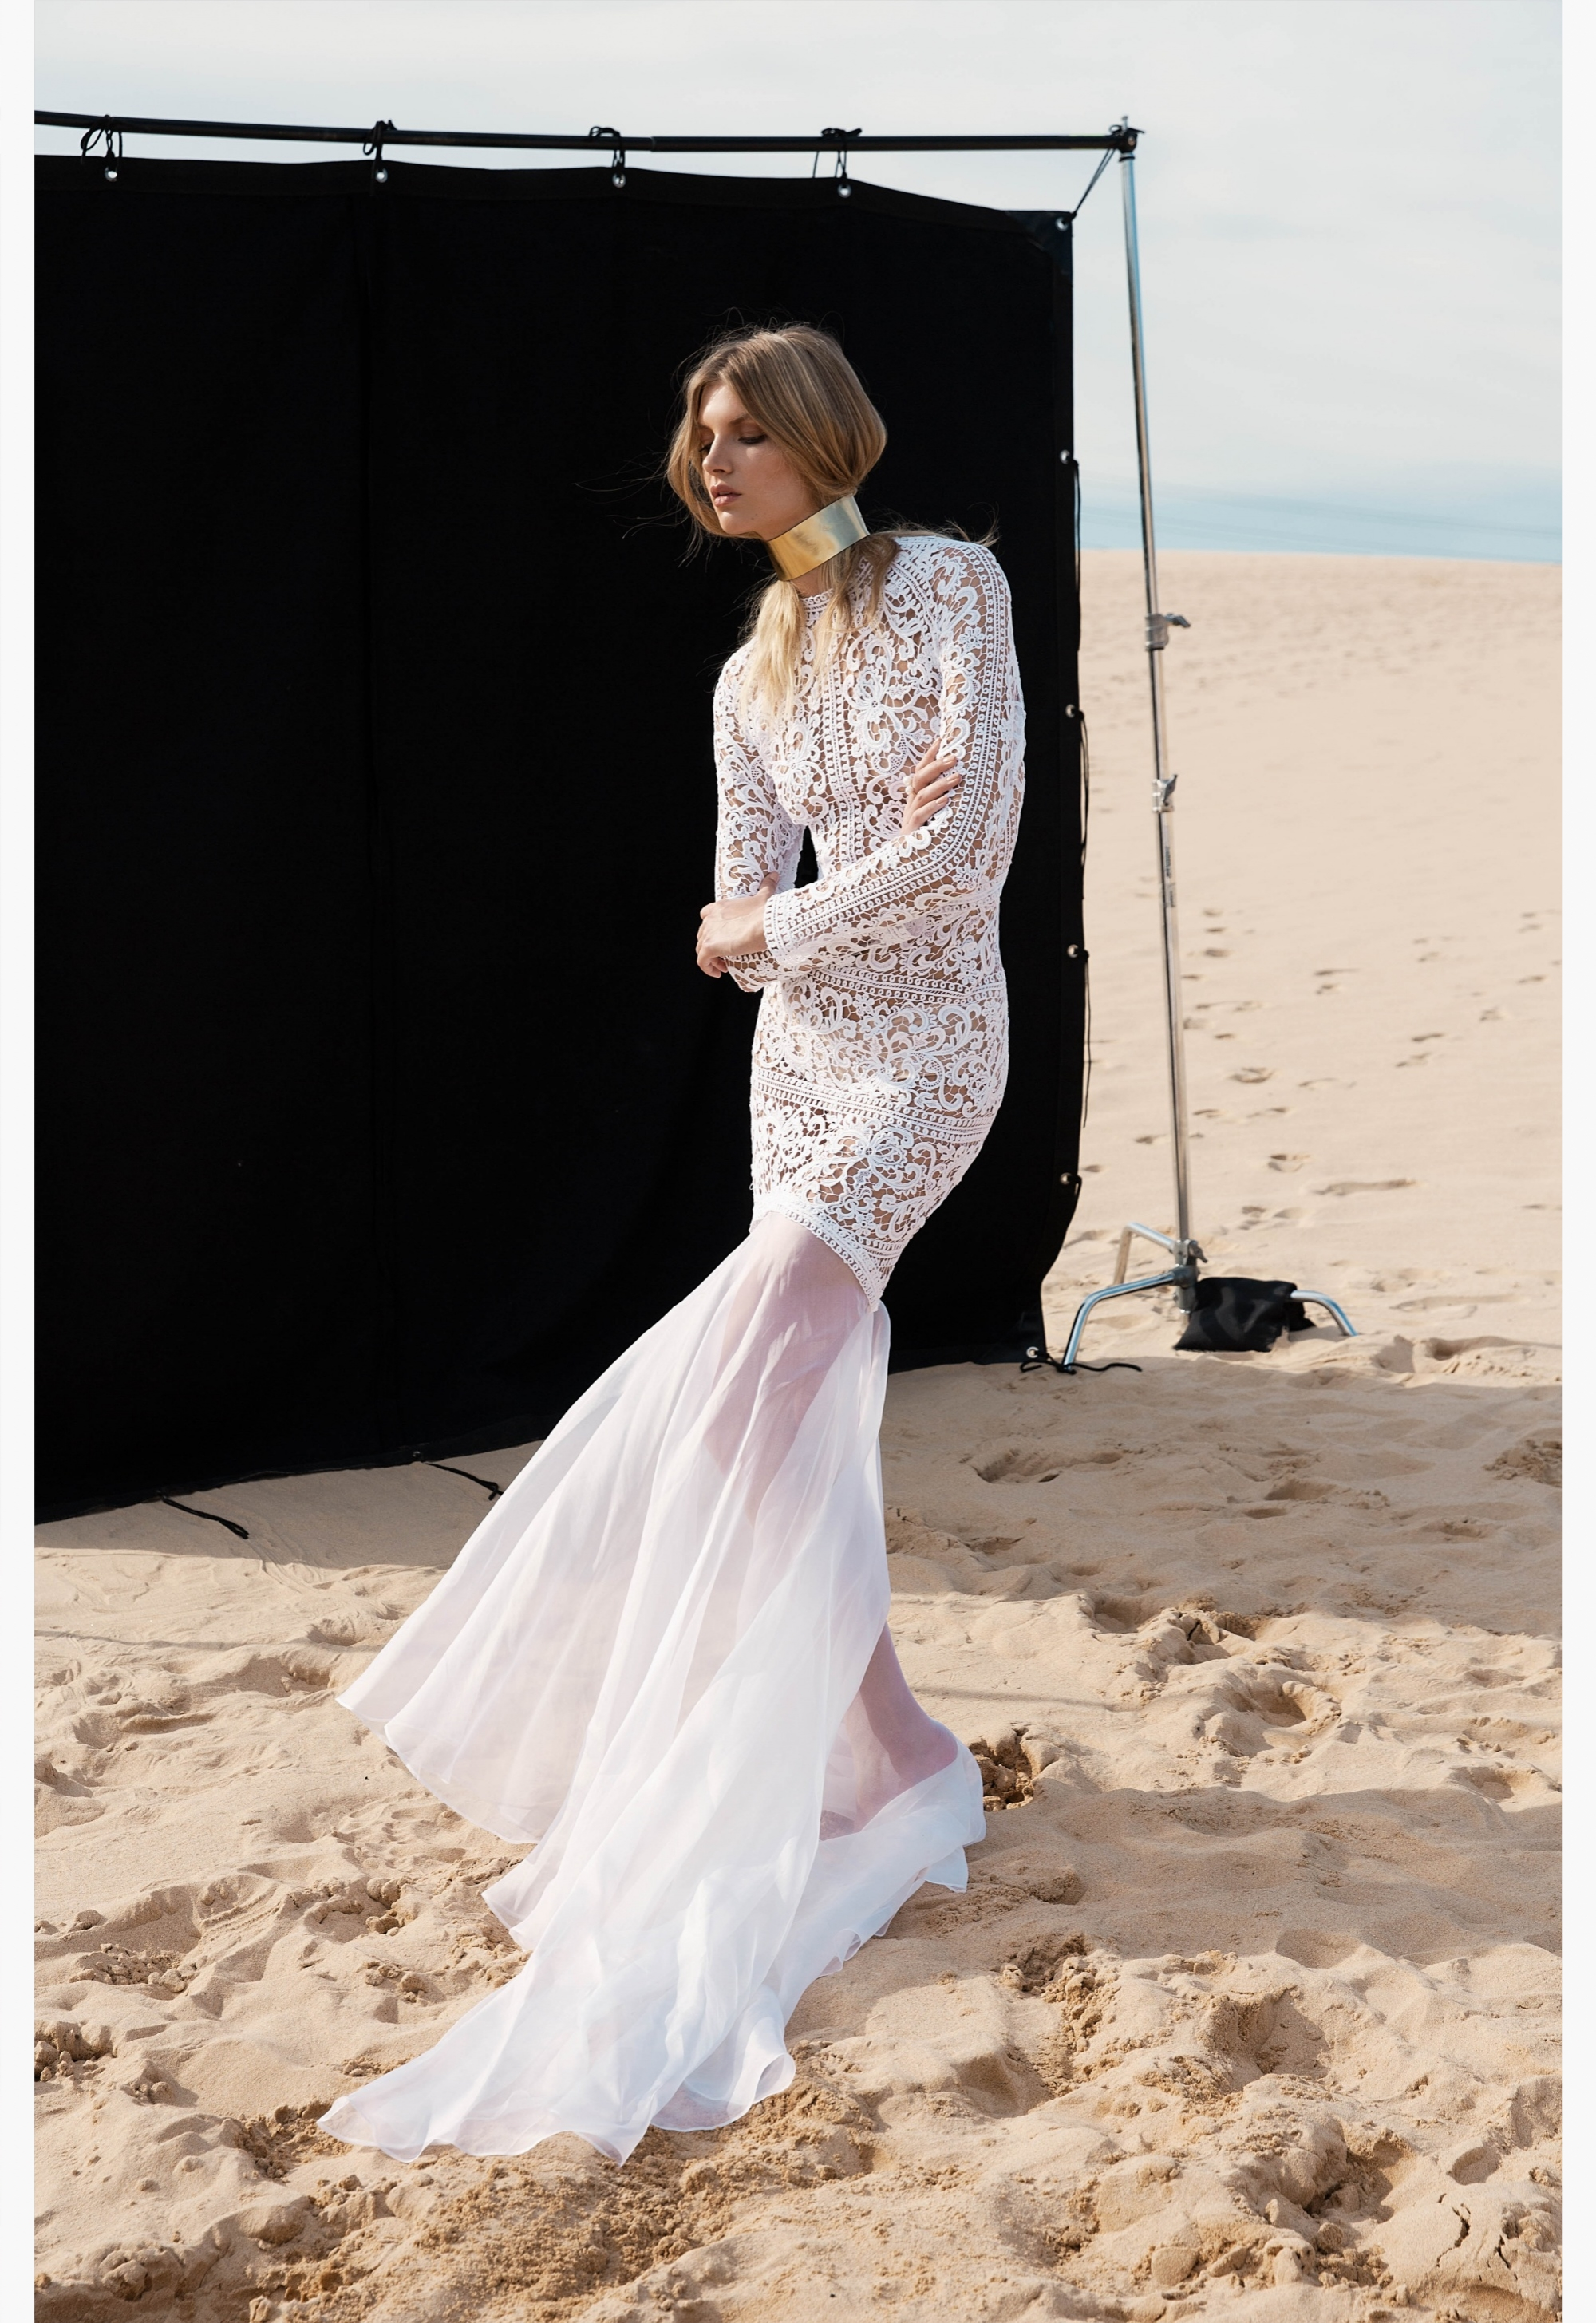 LOVE FIND CO. // ONE DAY BRIDAL 'Blessed Are The Curious' - Emmy Gown